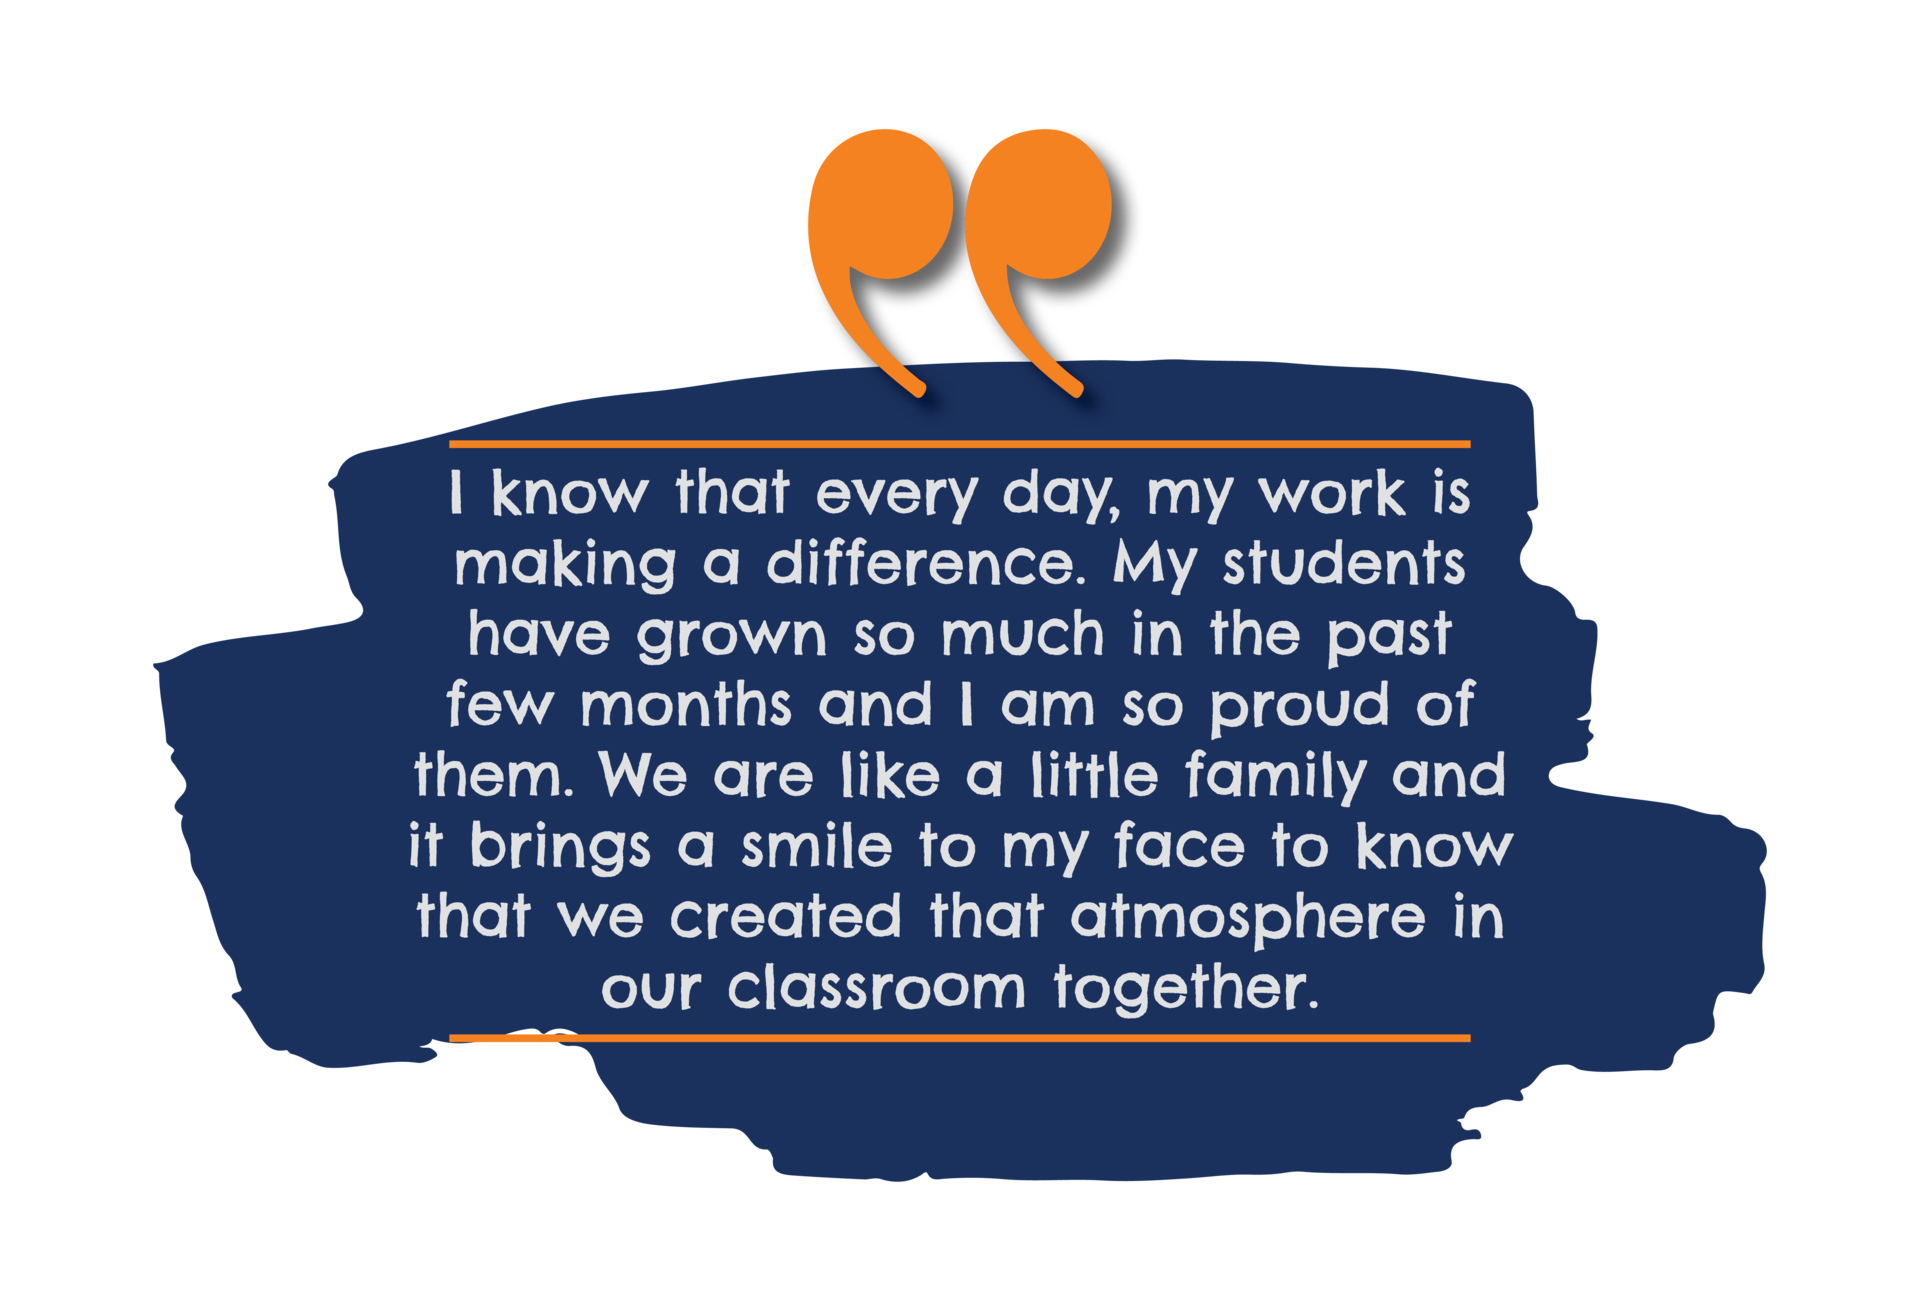 I know that every day, my work is making a difference. My students have grown so much in the past few months and I am so proud of them. We are like a little family and it brings a smile to my face to know that we created that atmosphere in our classroom, together.